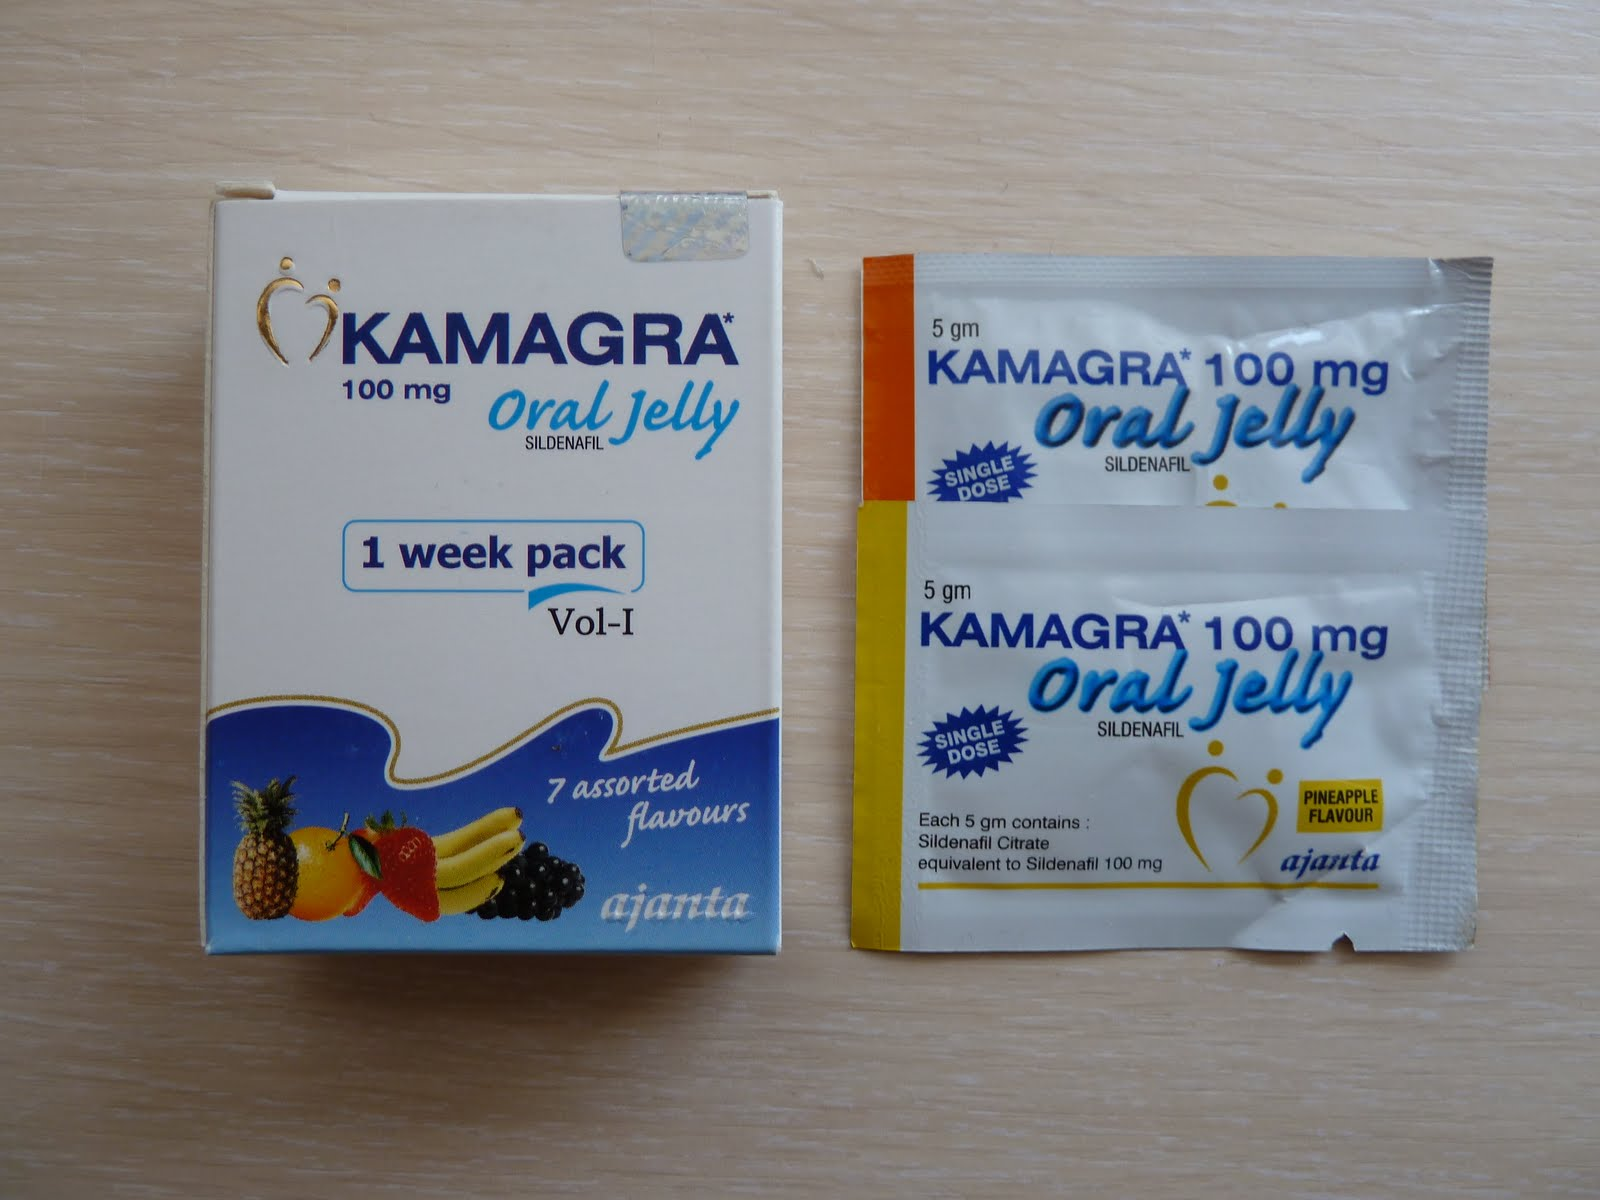 kamagra oral jelly 100mg dejstvo